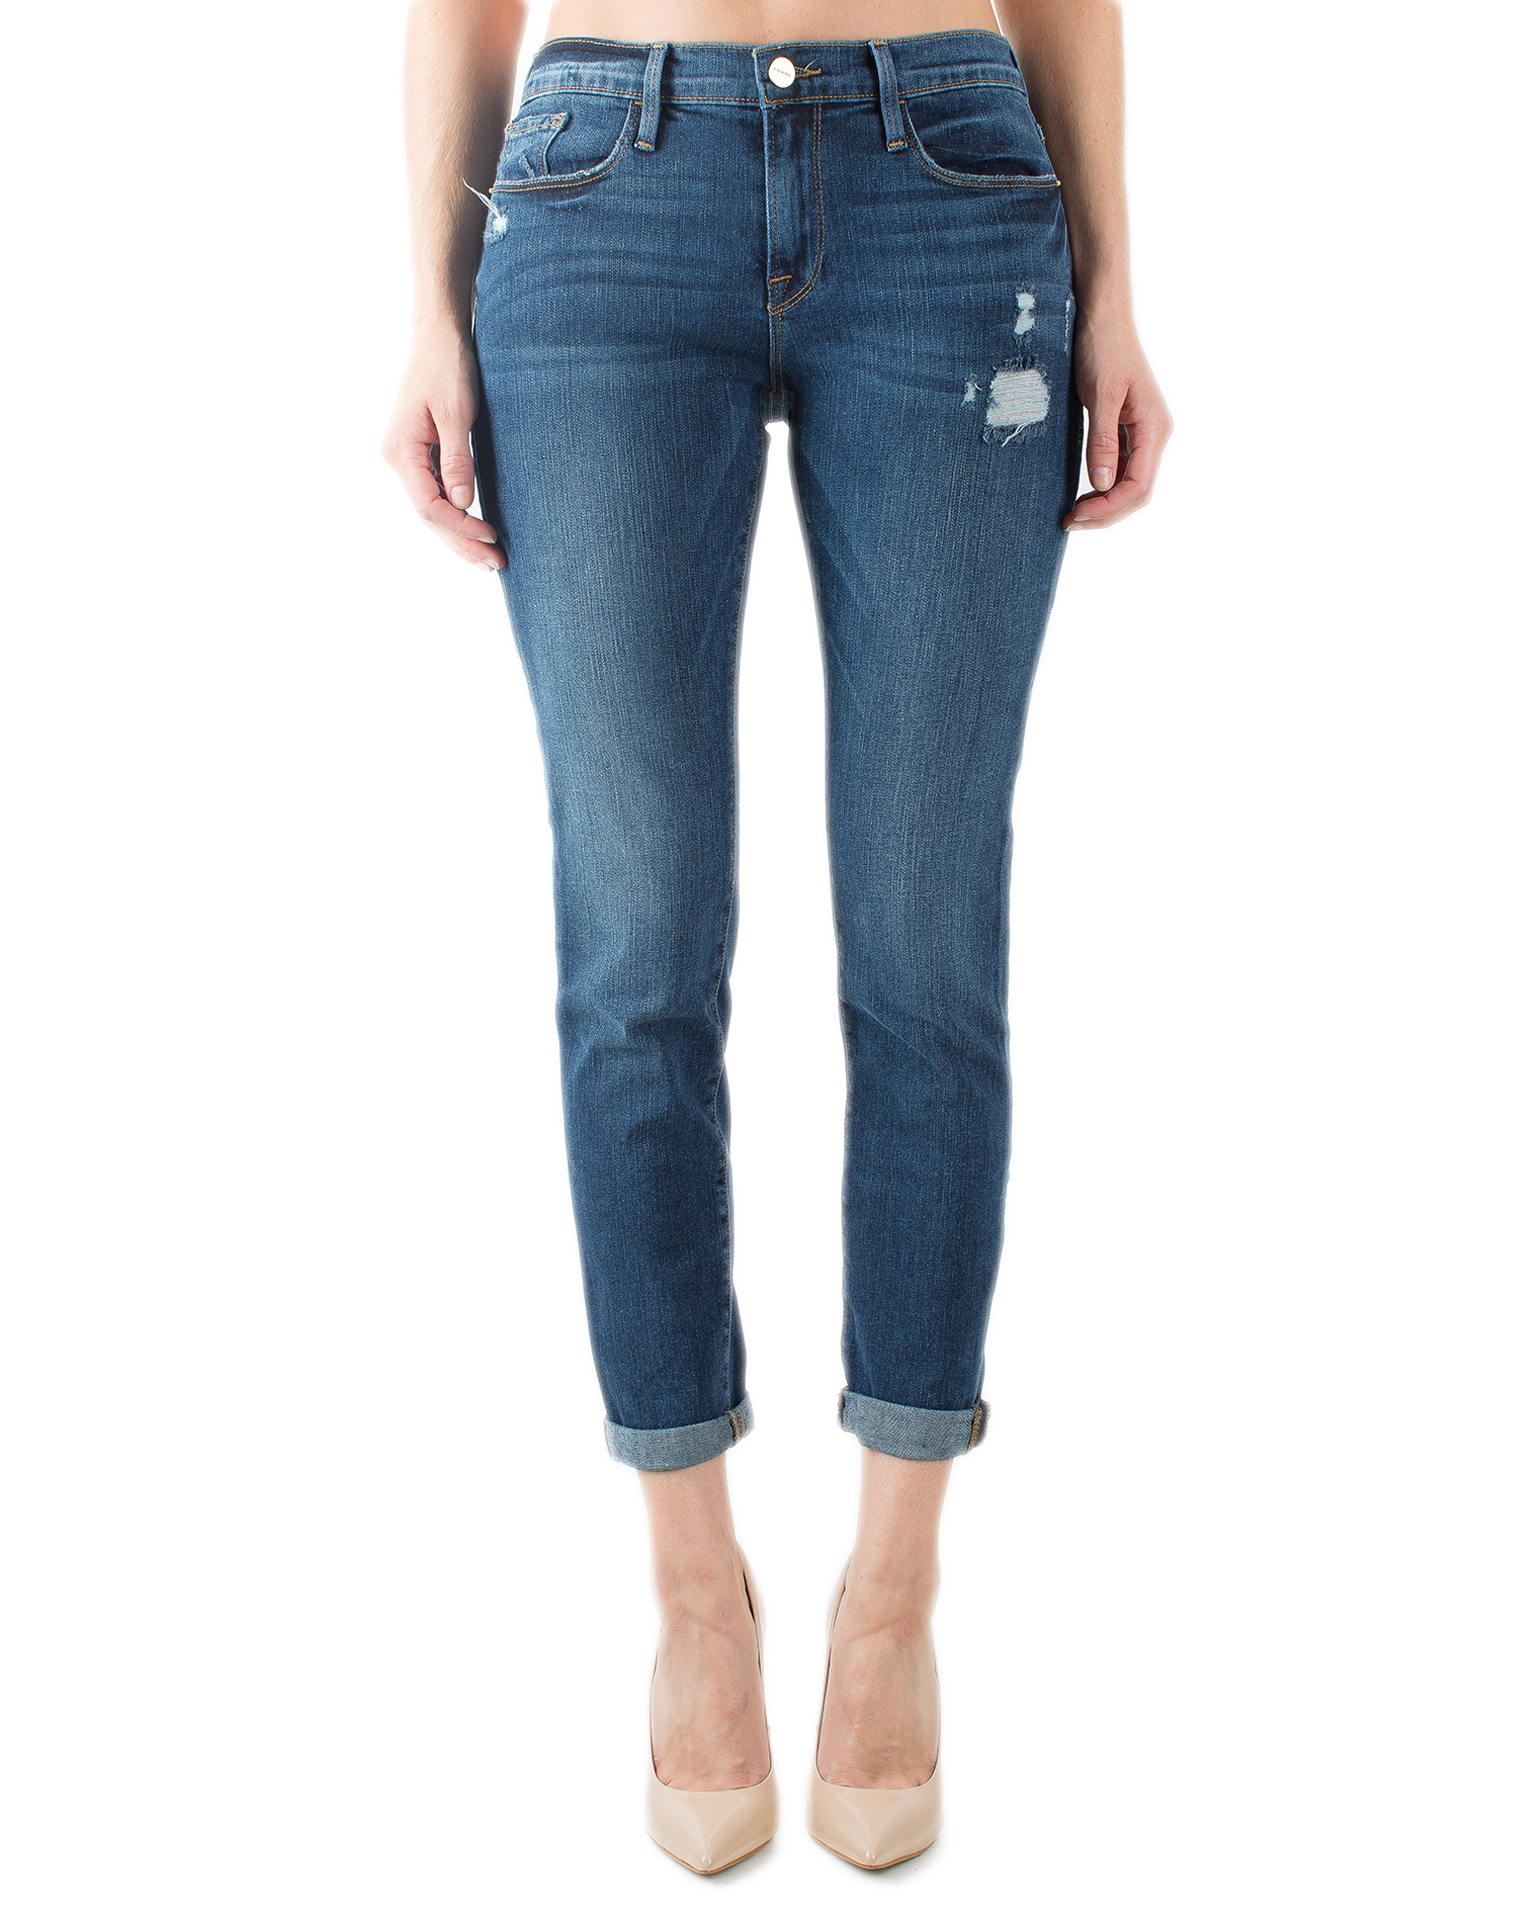 Pretty Frame Denim Le Garcon | Breathtaking Frame Denim Le Skinny